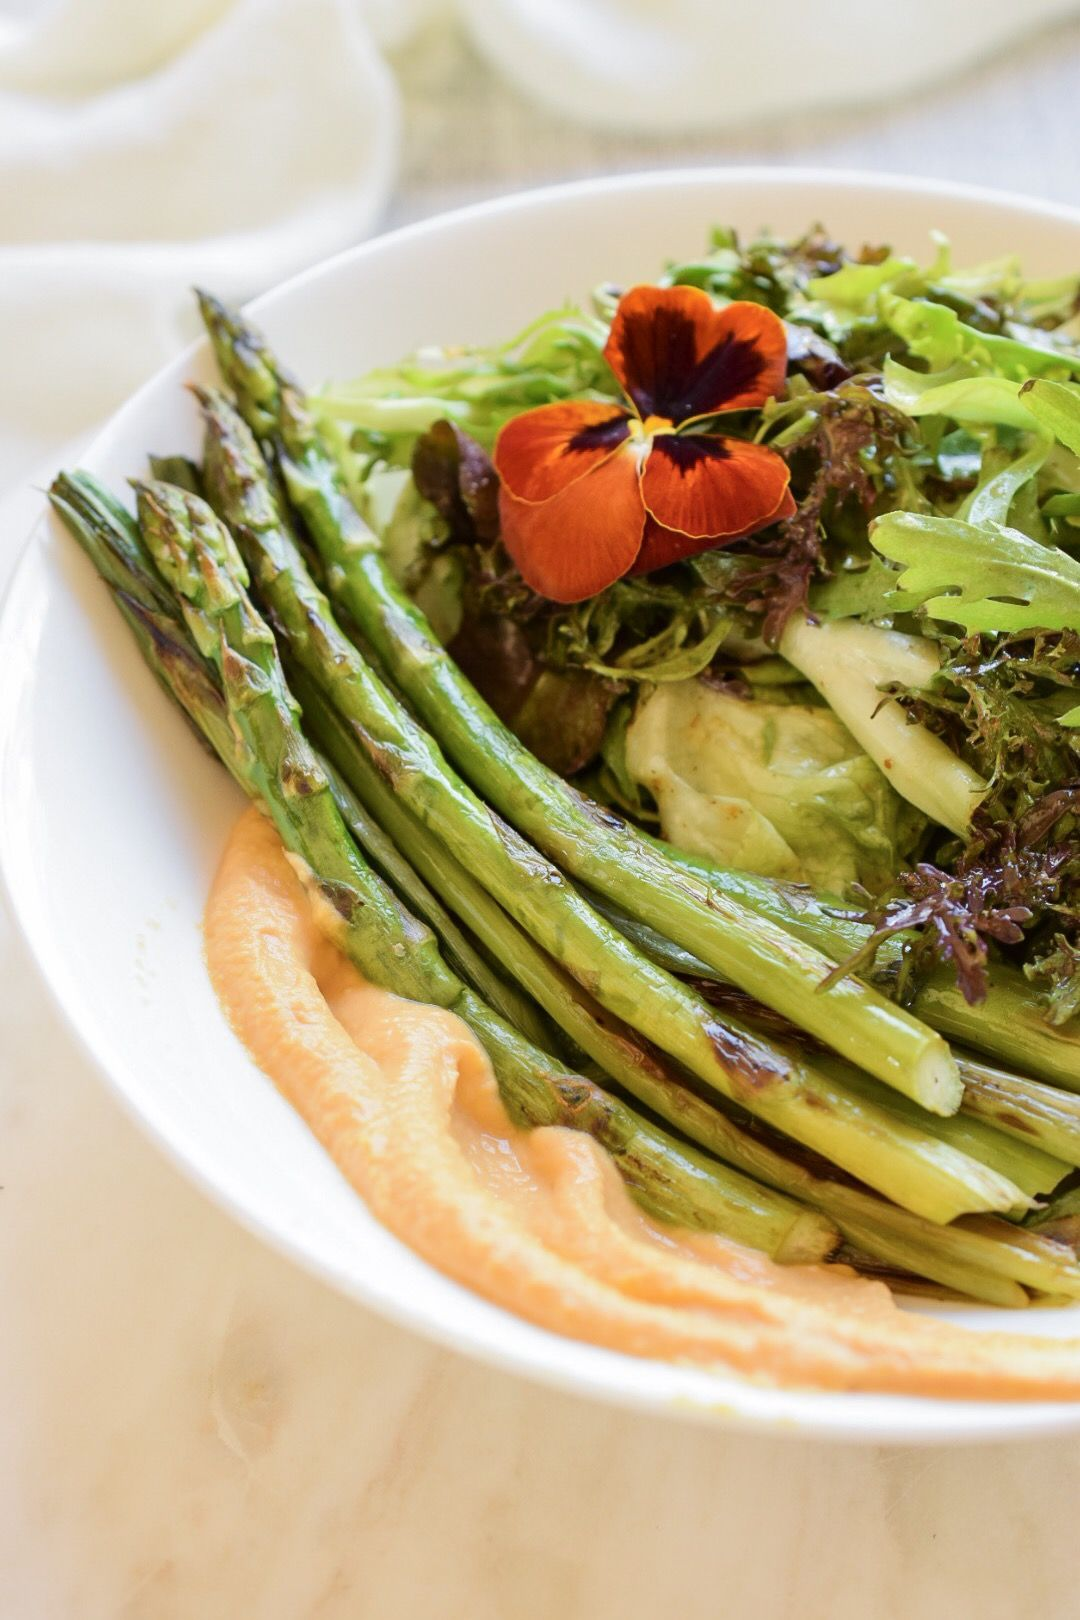 Grilled Asparagus with Whipped Carrot Hummus